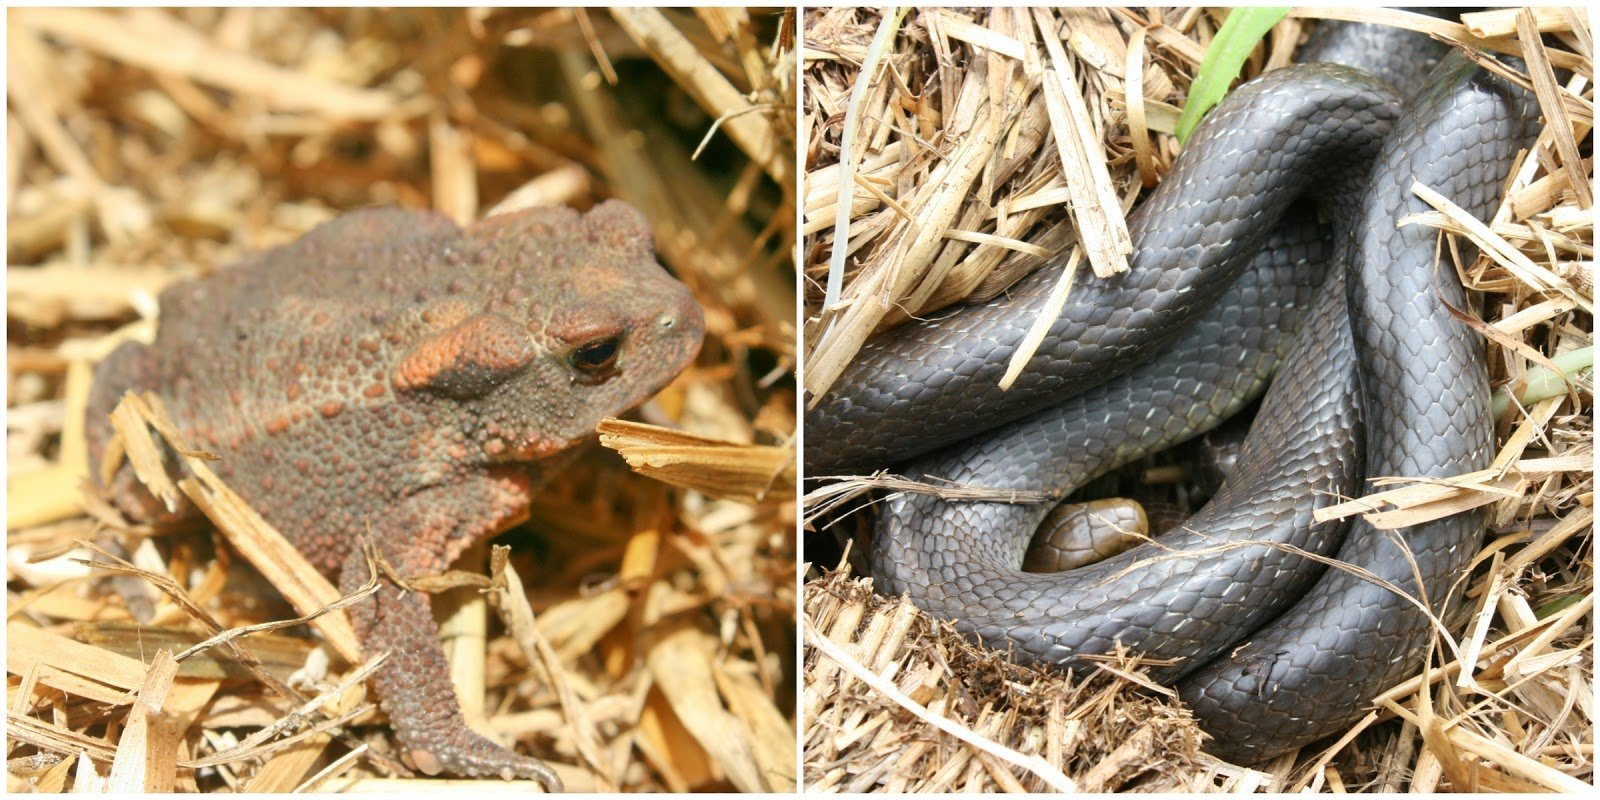 Common Toad - Bufo bufo and Aesculapian snake - Zamenis longissimus photographed within one of our Straw bale stacks.